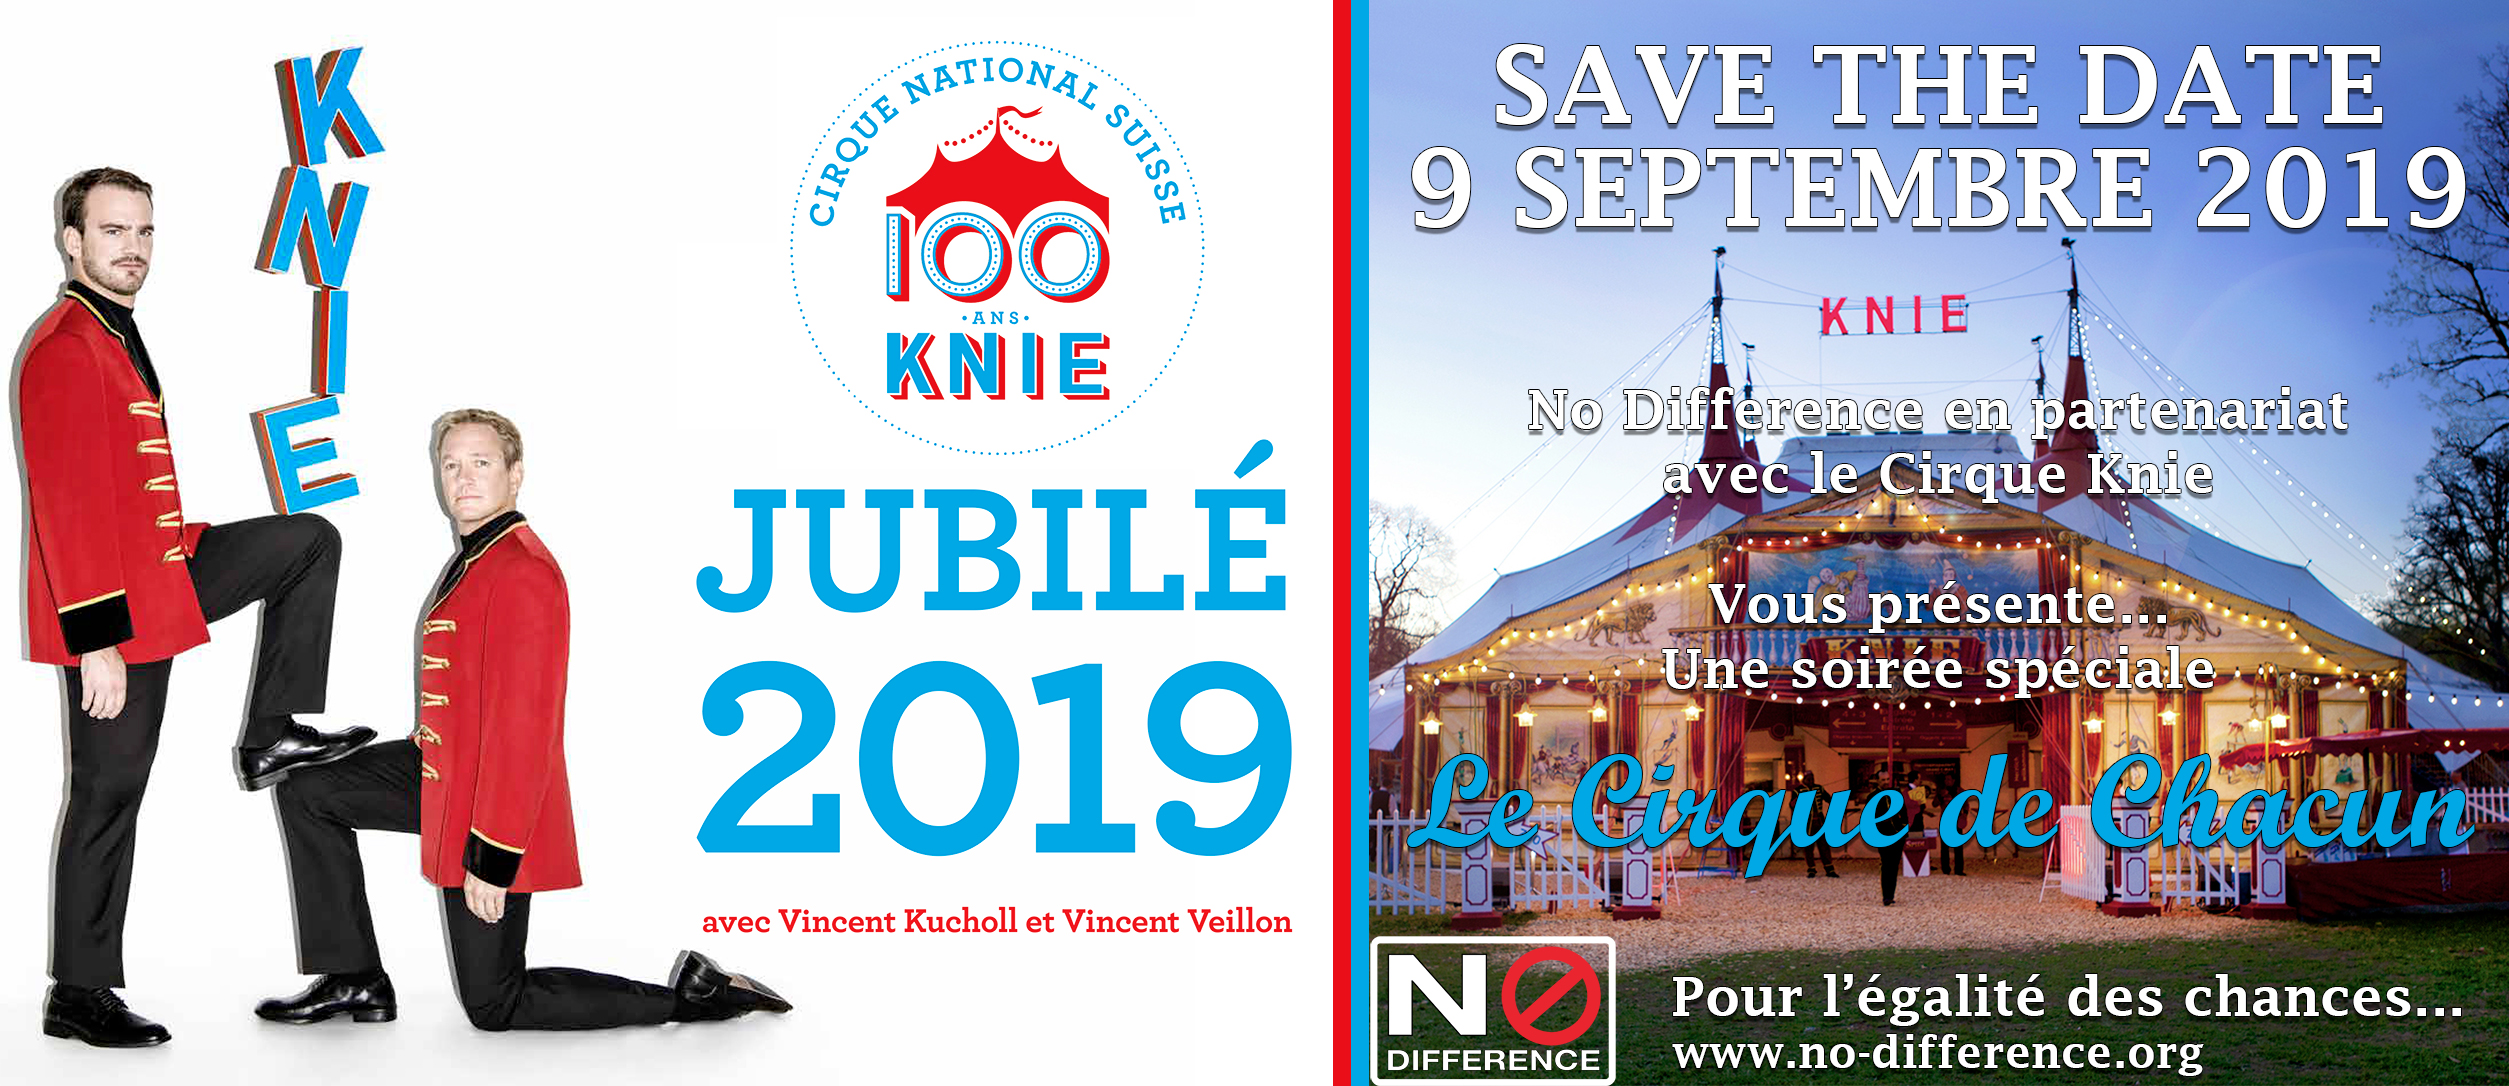 Save the Date Knie 2019